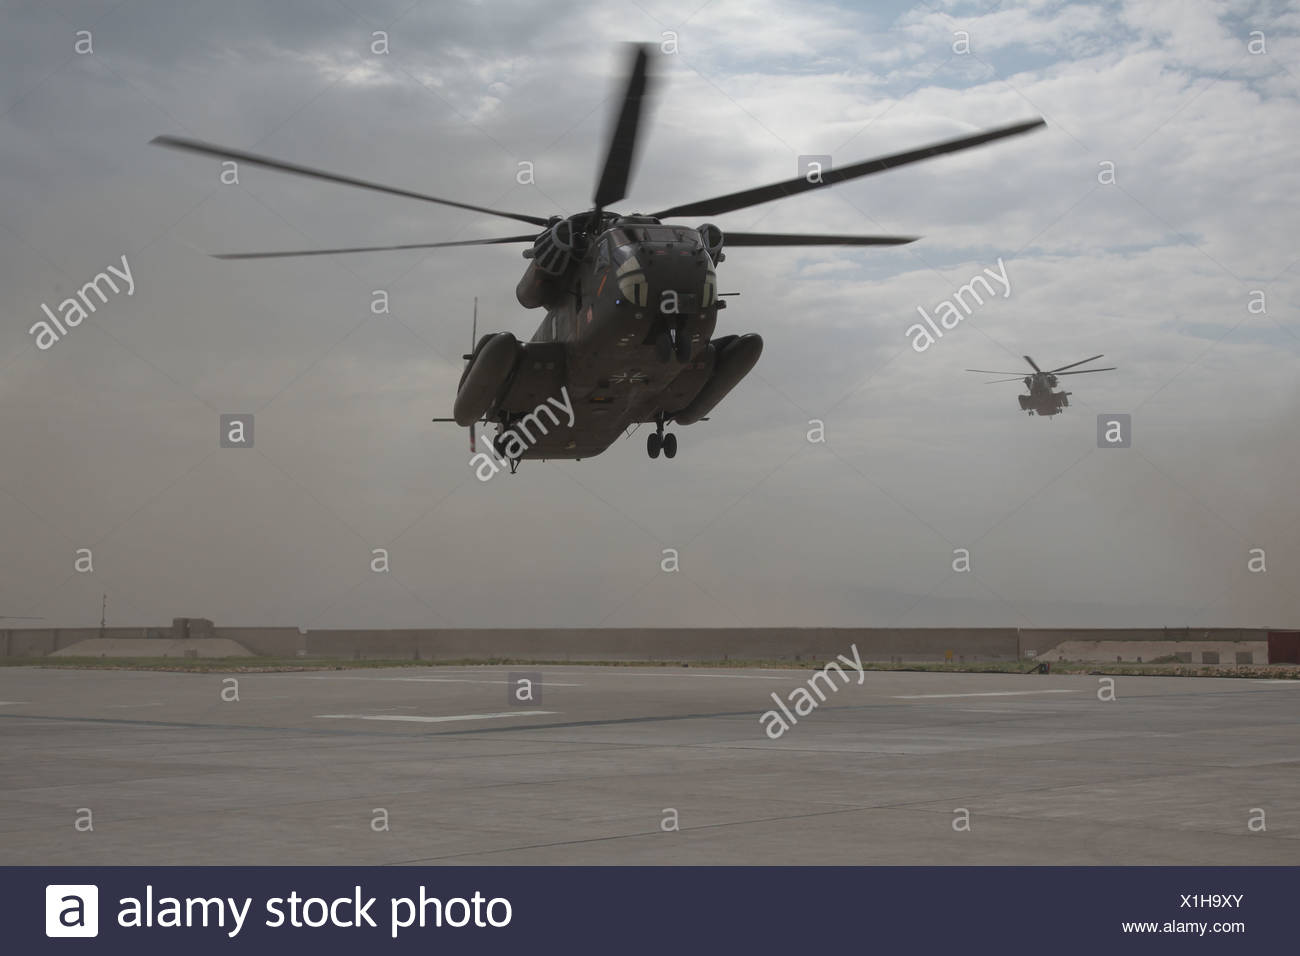 NATO ISAF PRT-Camp, landing of two German Army CH-53 helicopters of type CH-53 at the PRT Camp, Kunduz, Afghanistan, Asia - Stock Image